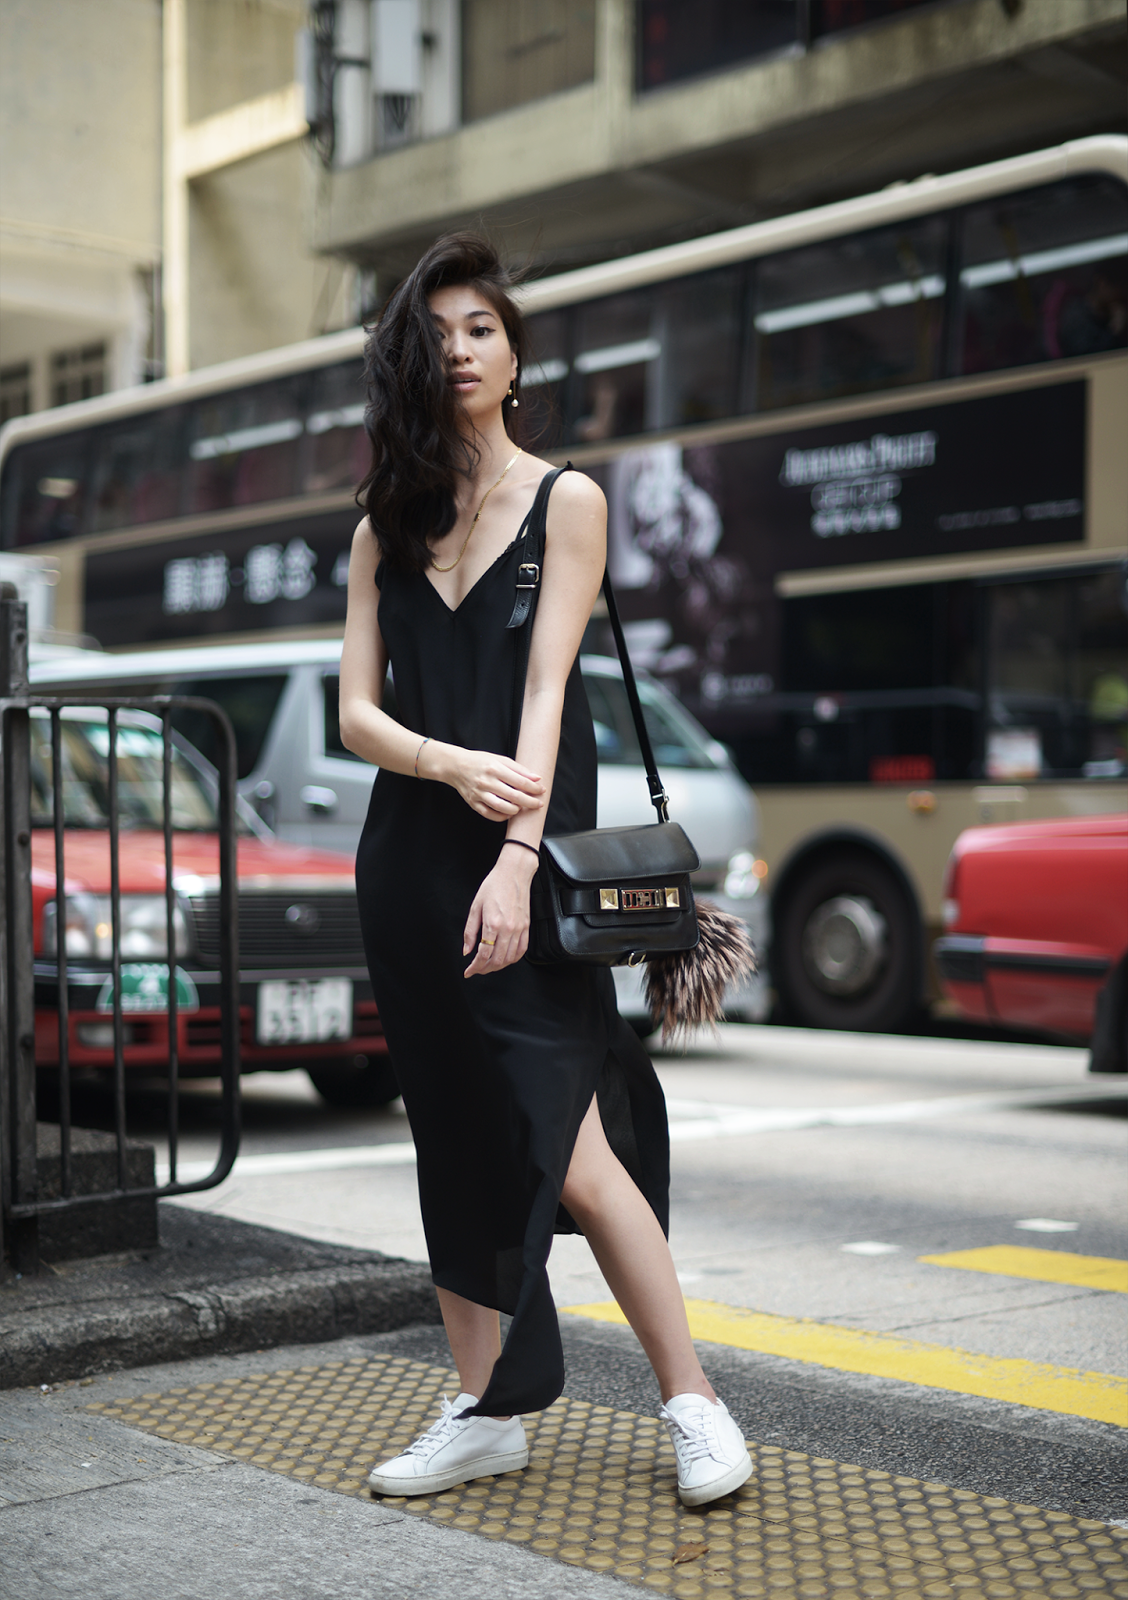 Asymmetric Slip Dress by Raey in Hong Kong   Raw   FOREVERVANNY.com 슬립 드레스 c835307f11b27